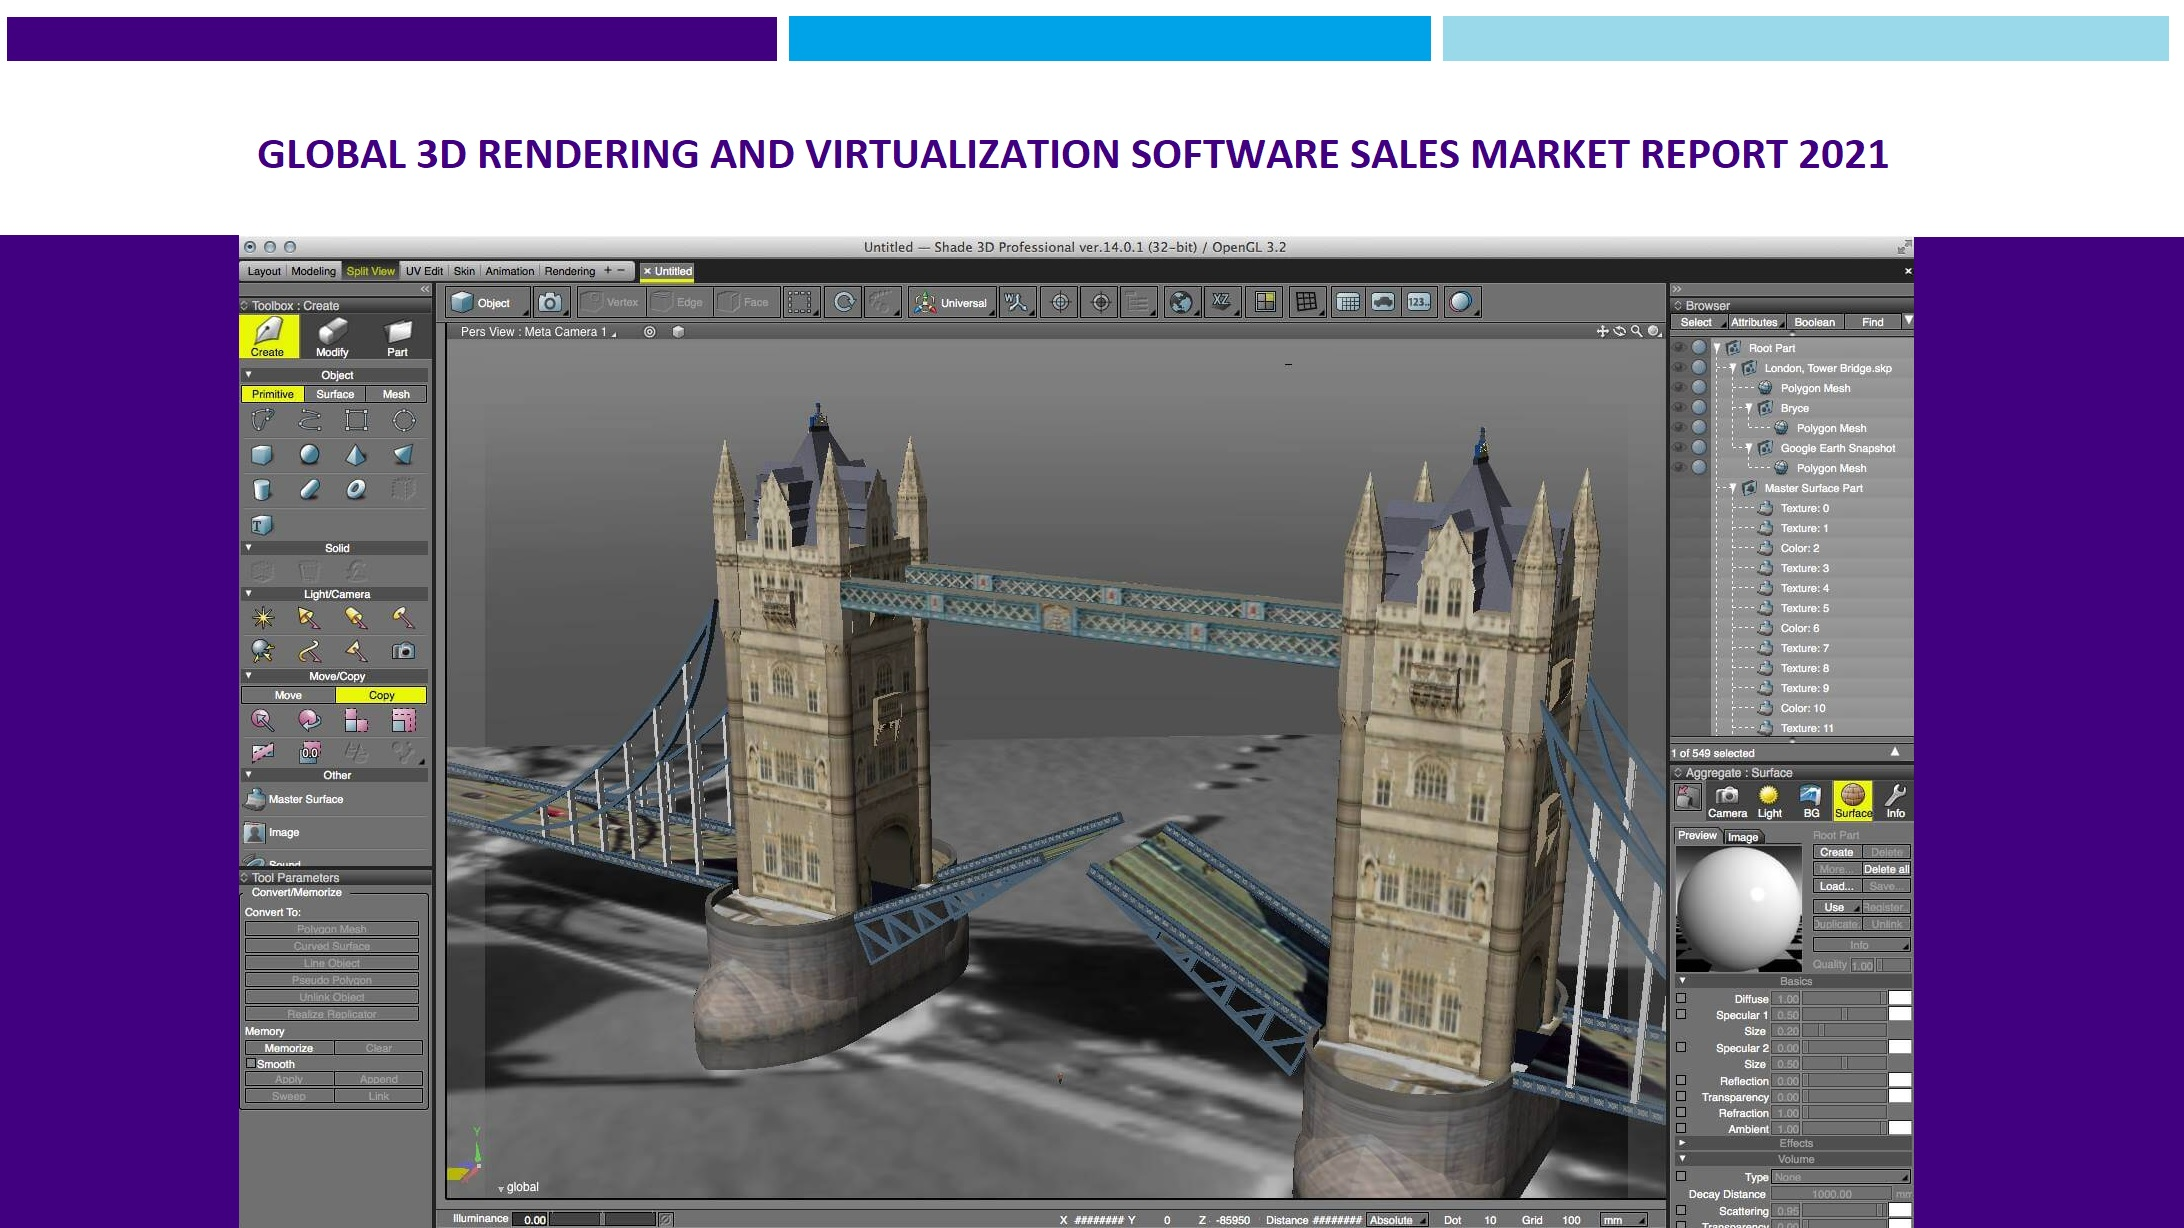 Global 3D Rendering and Virtualization Software Sales Market Report 2021.